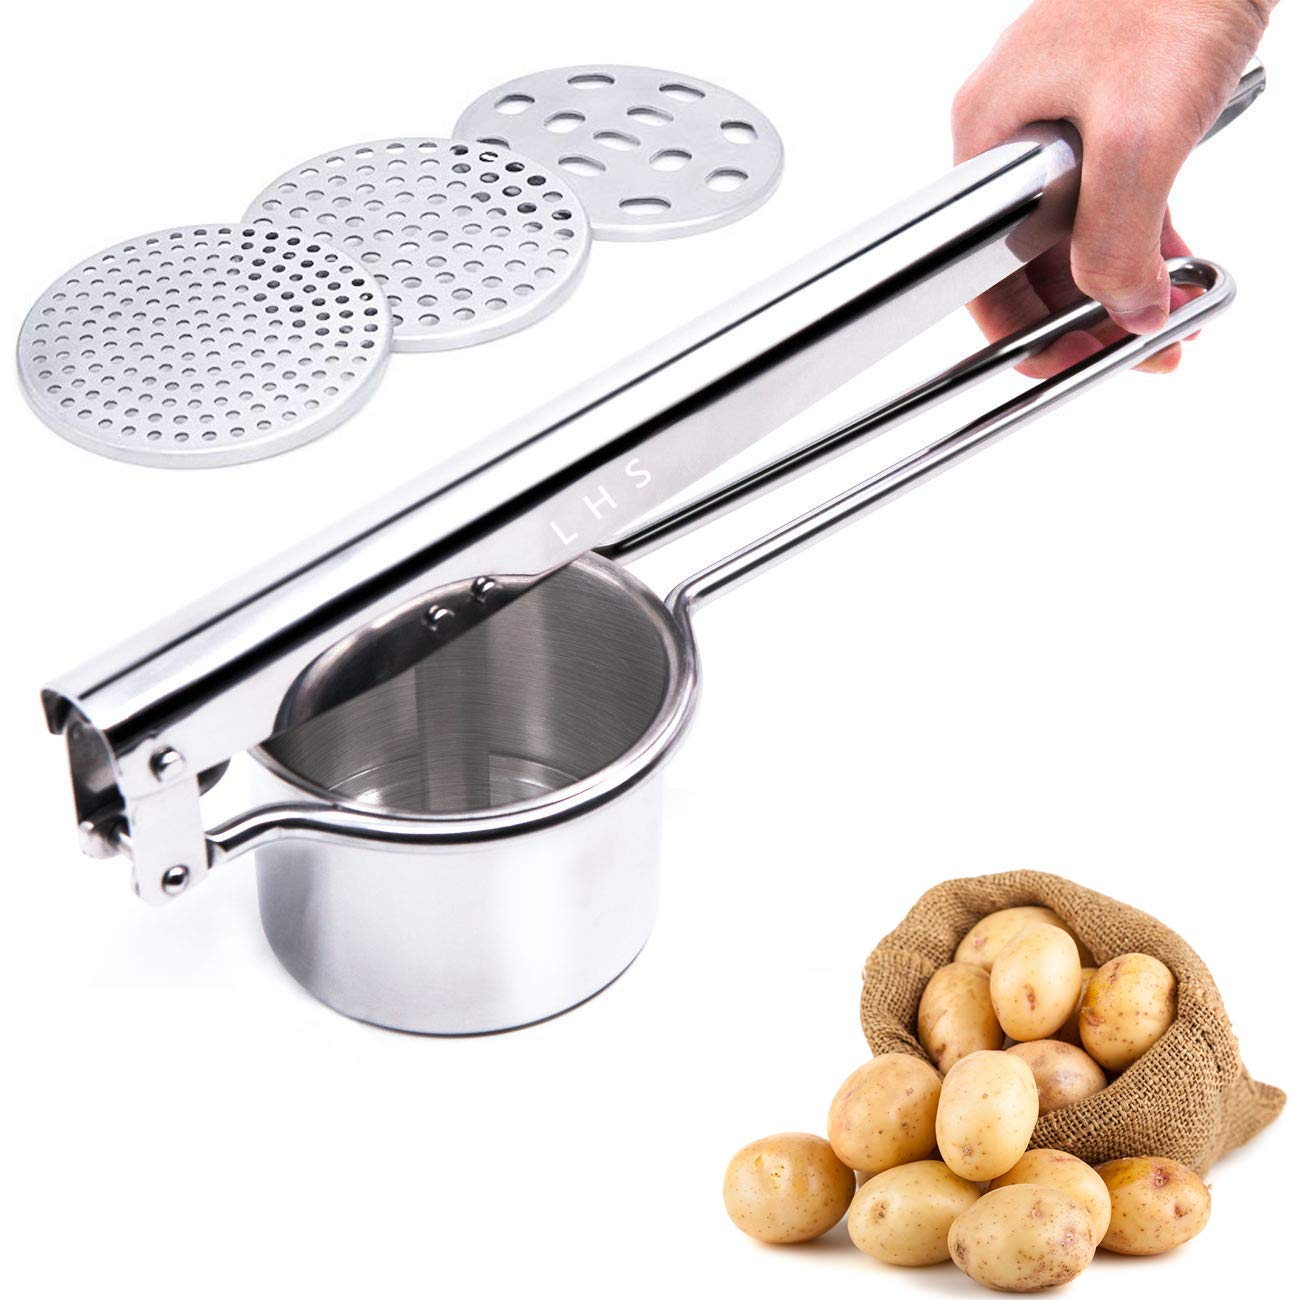 Stainless Steel Potato Ricer Masher with Good Grip Handle and 3 Interchangeable Discs for Fine Medium and Coarse Easy To Usefor Potatoes Fruits Vegetables Baby Food and More